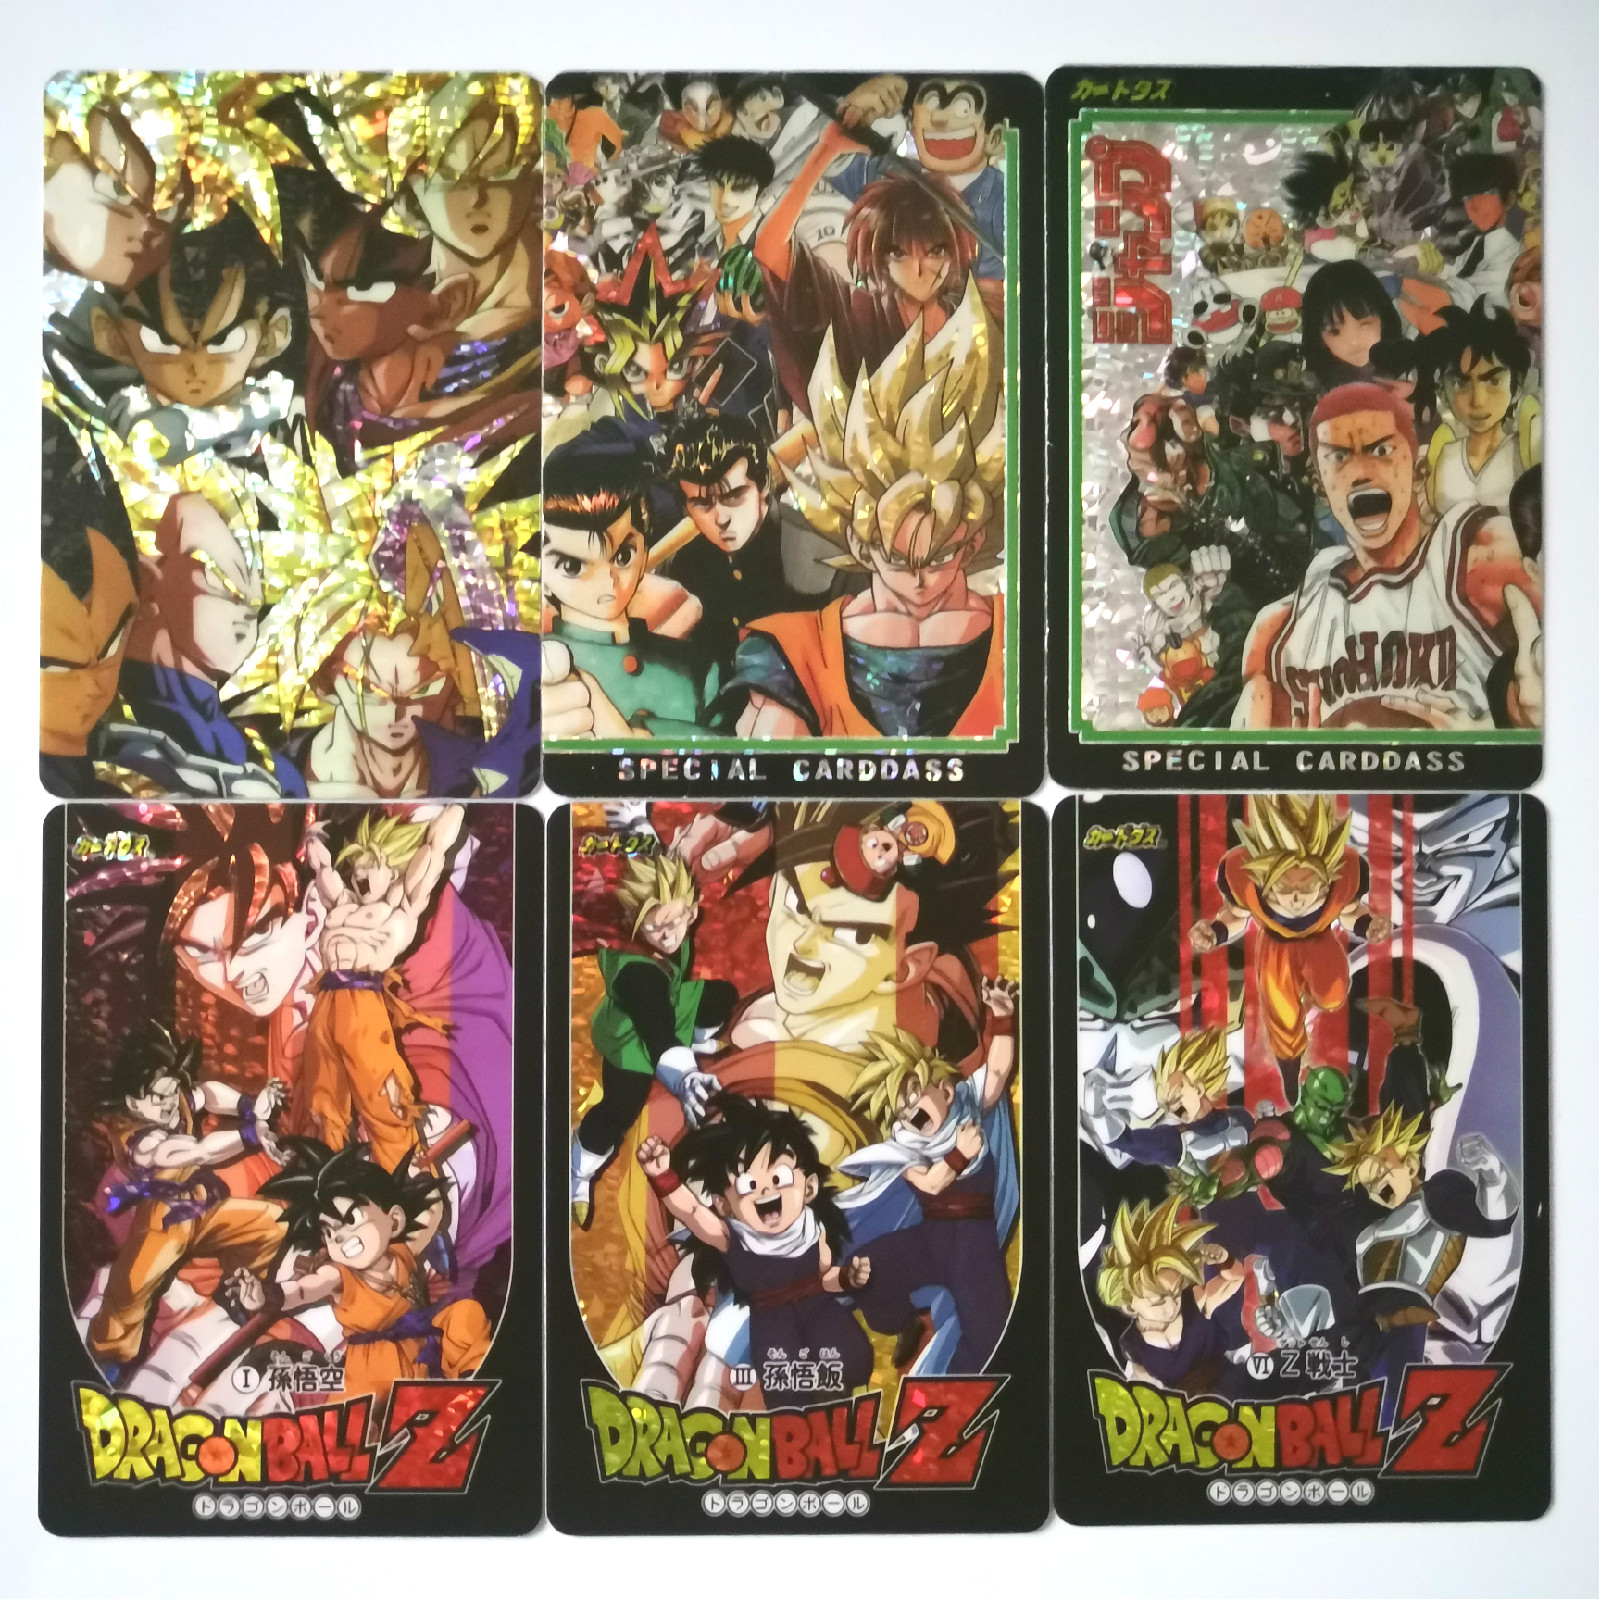 32pcs Super Dragon Ball Z Heroes Battle Card Sexy Android 18 Goku Vegeta Game Collection Double Chess Anime Cards